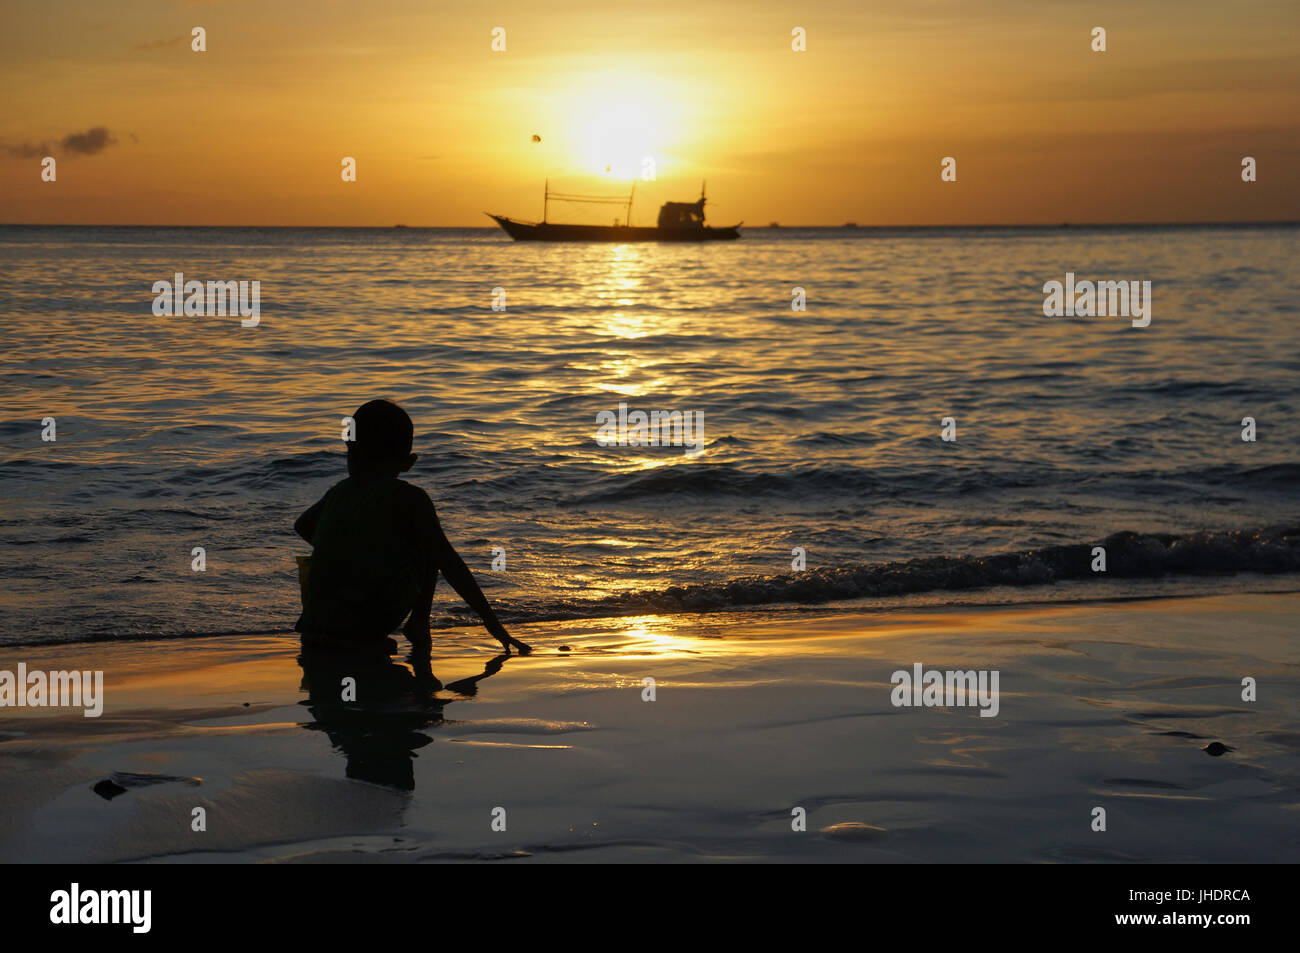 Holiday background. Boy playing against golden sky and sea during sunset. Boy crouched down playing in the sand - Stock Image